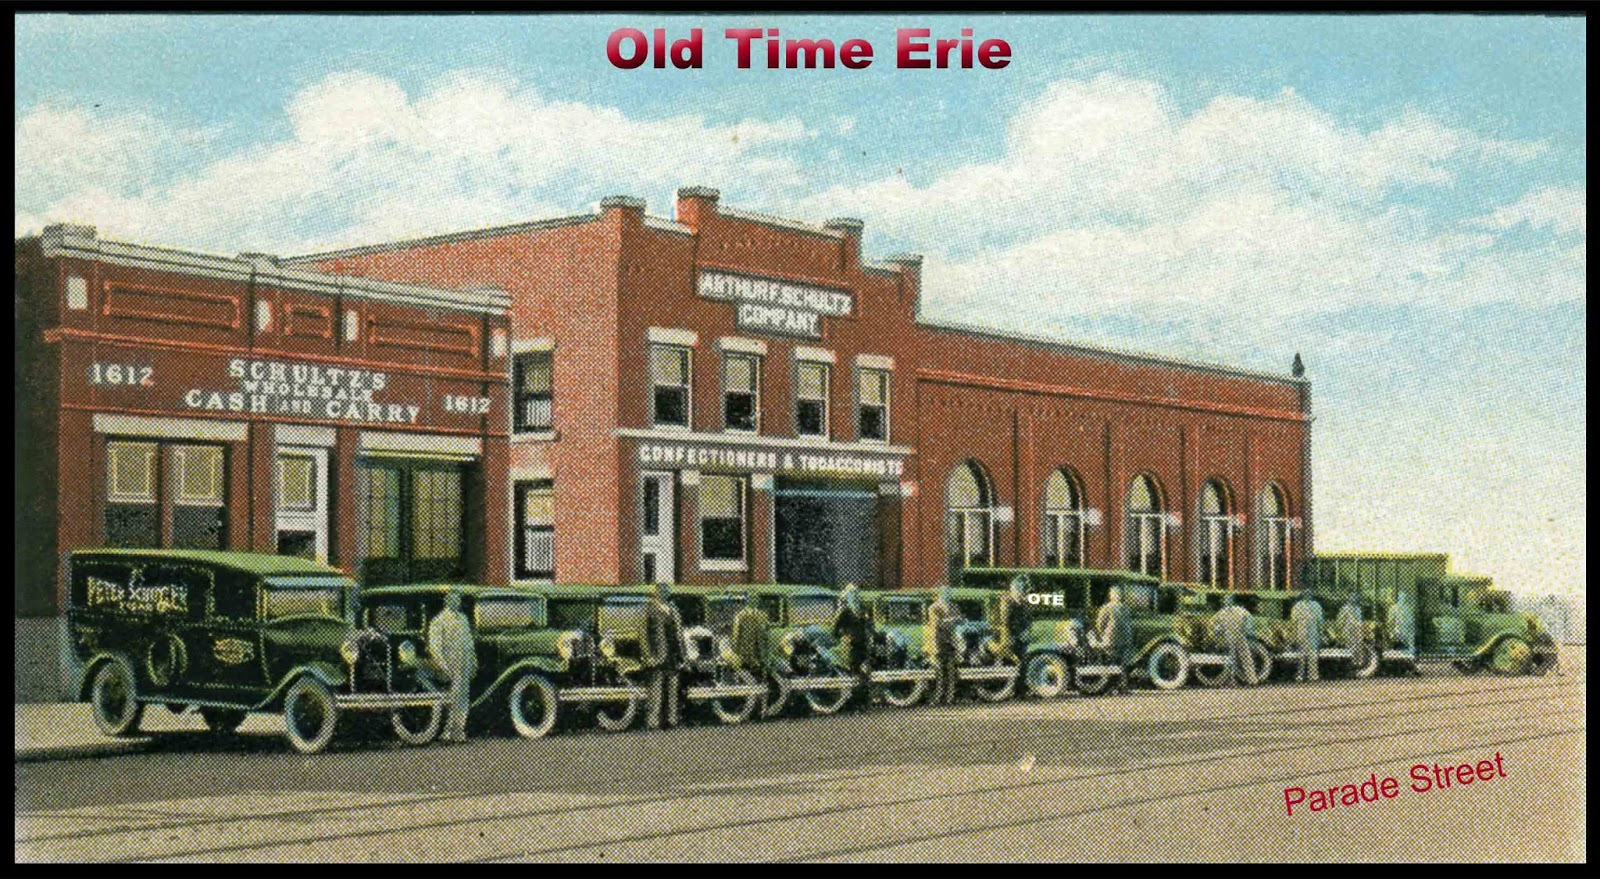 Old Time Erie Schultz Warehouse on Parade Street